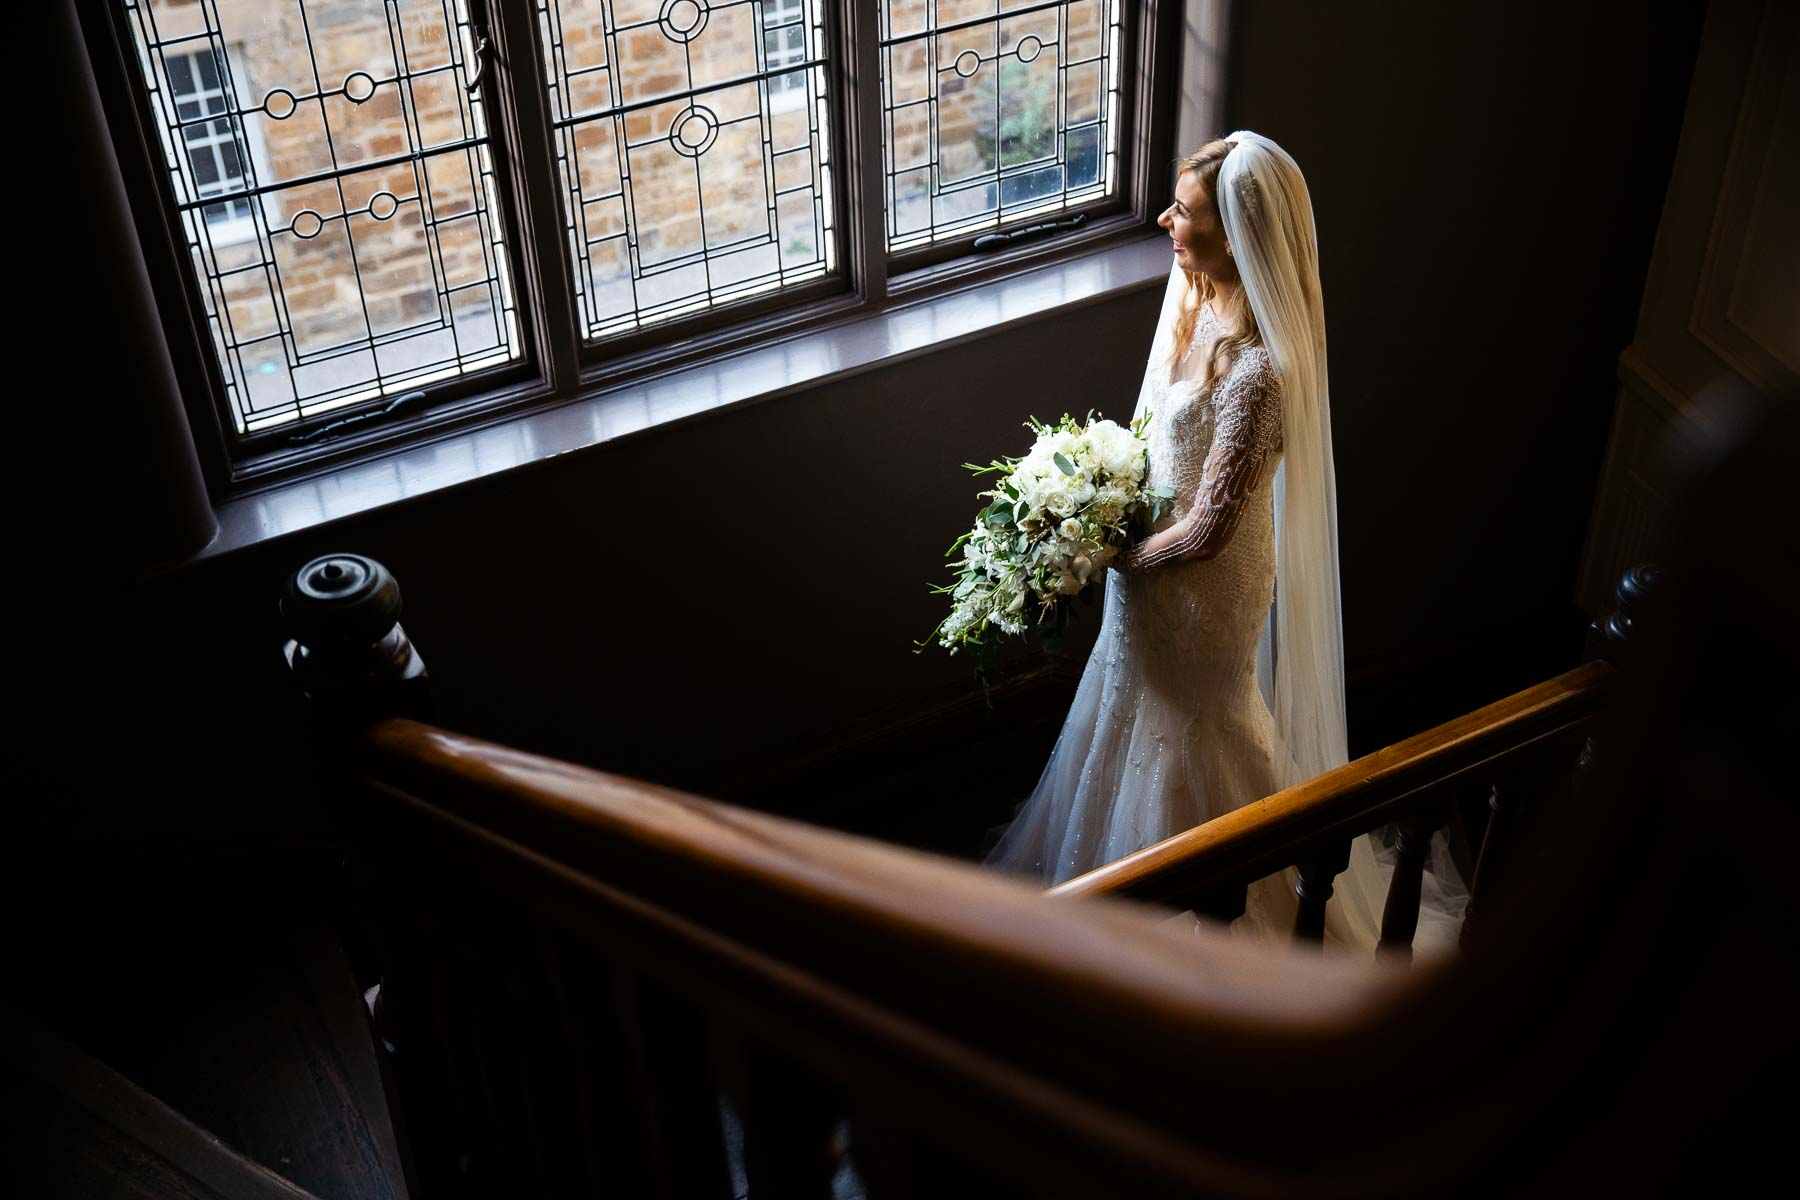 Delapre abbey beautiful stair case, with the bride looking out of the window